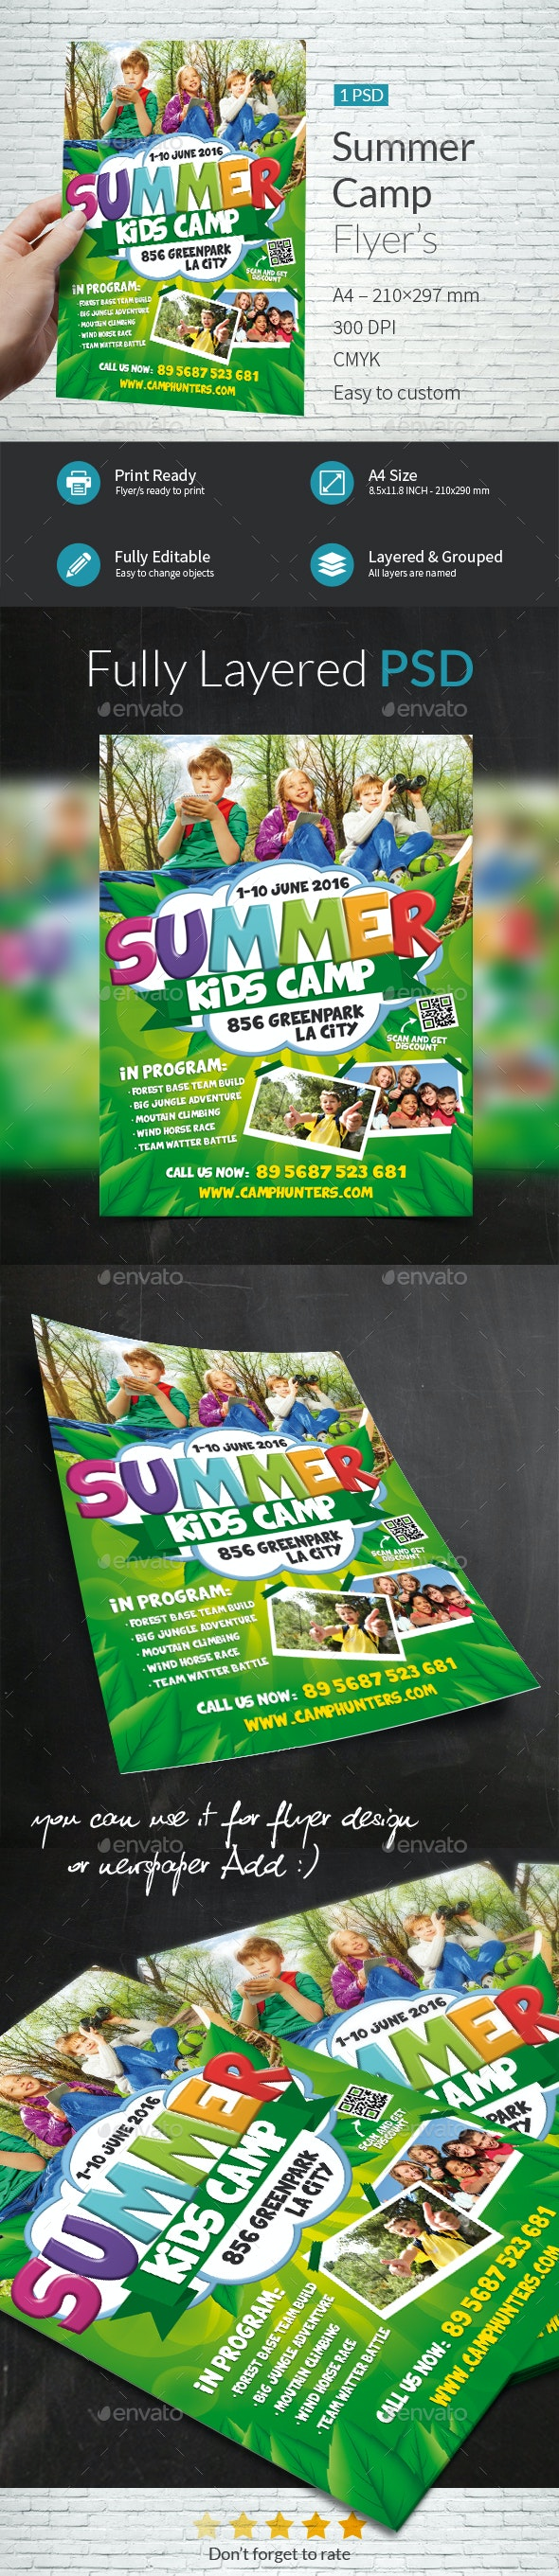 Summer Camp Flyer Template - Flyers Print Templates